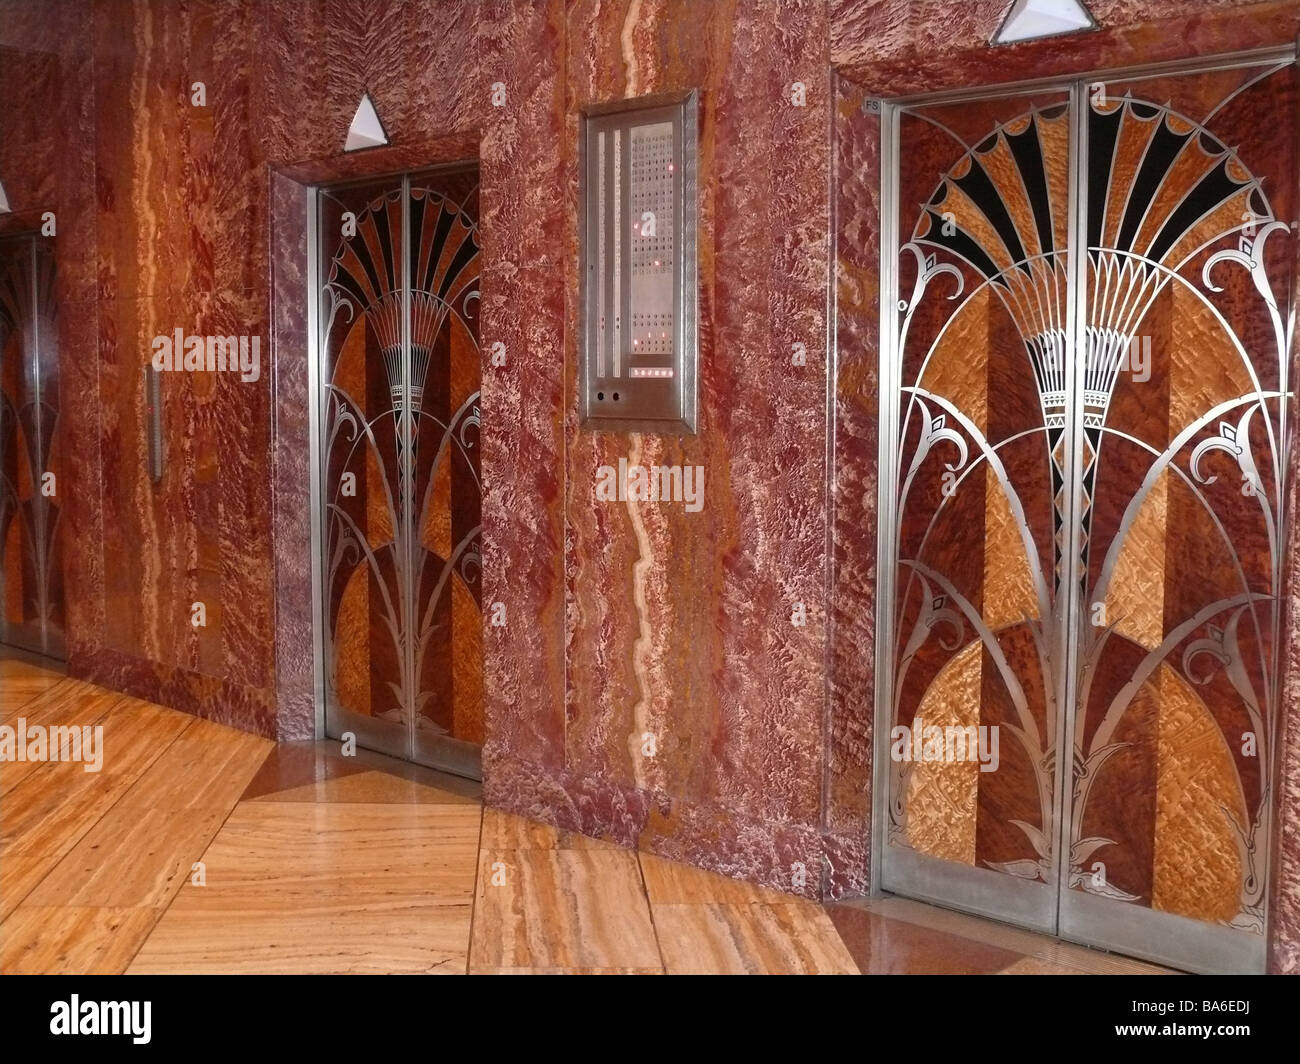 USA New York city Chrysler Building indoors elevators doors skillfully Art Däco America city Manhattan buildings - Stock Image